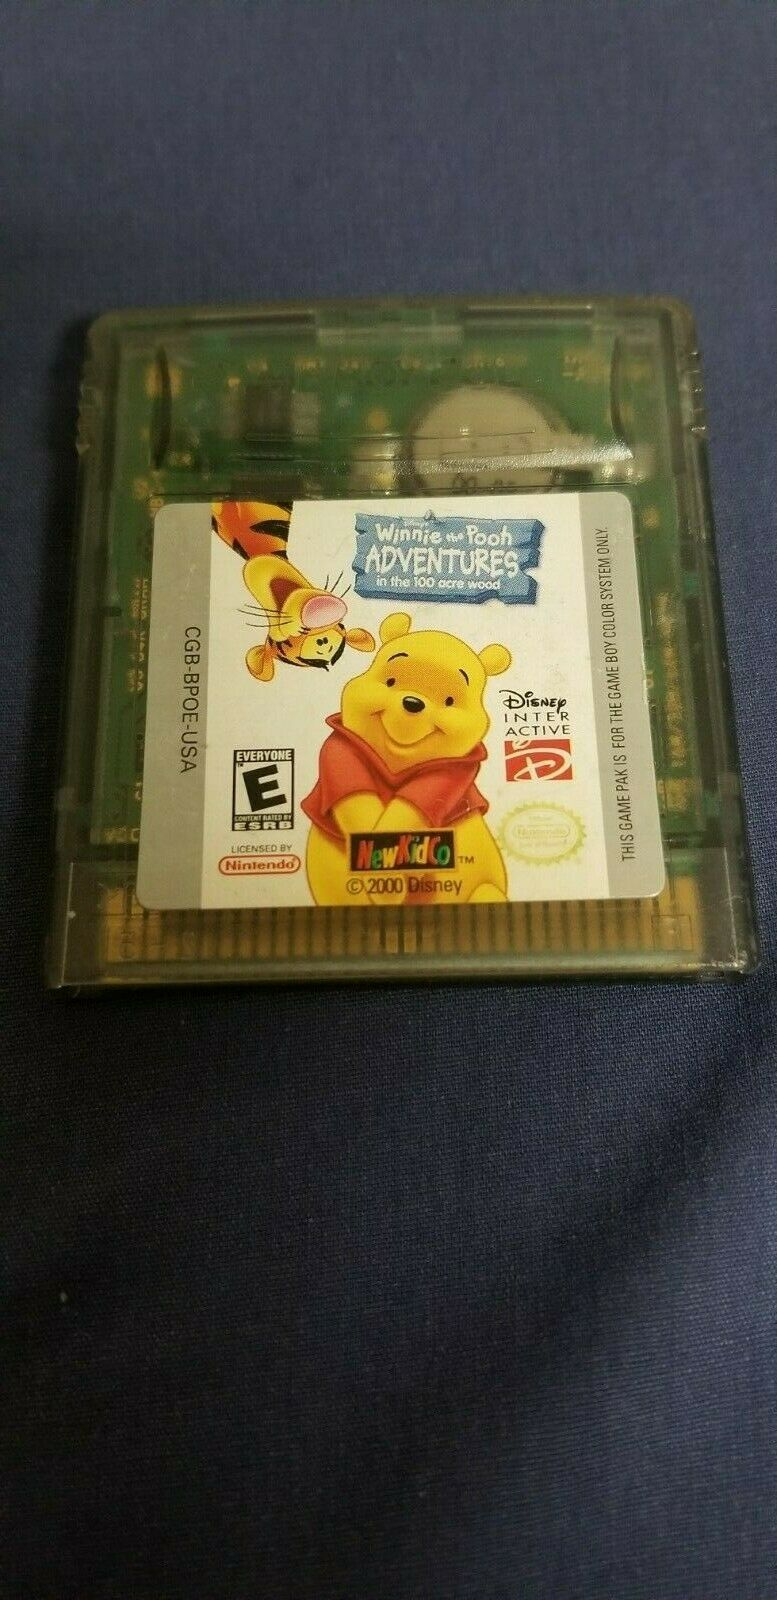 Disney Winnie the Pooh Adventures in the 100 Acre Wood Nintendo Game Boy Color